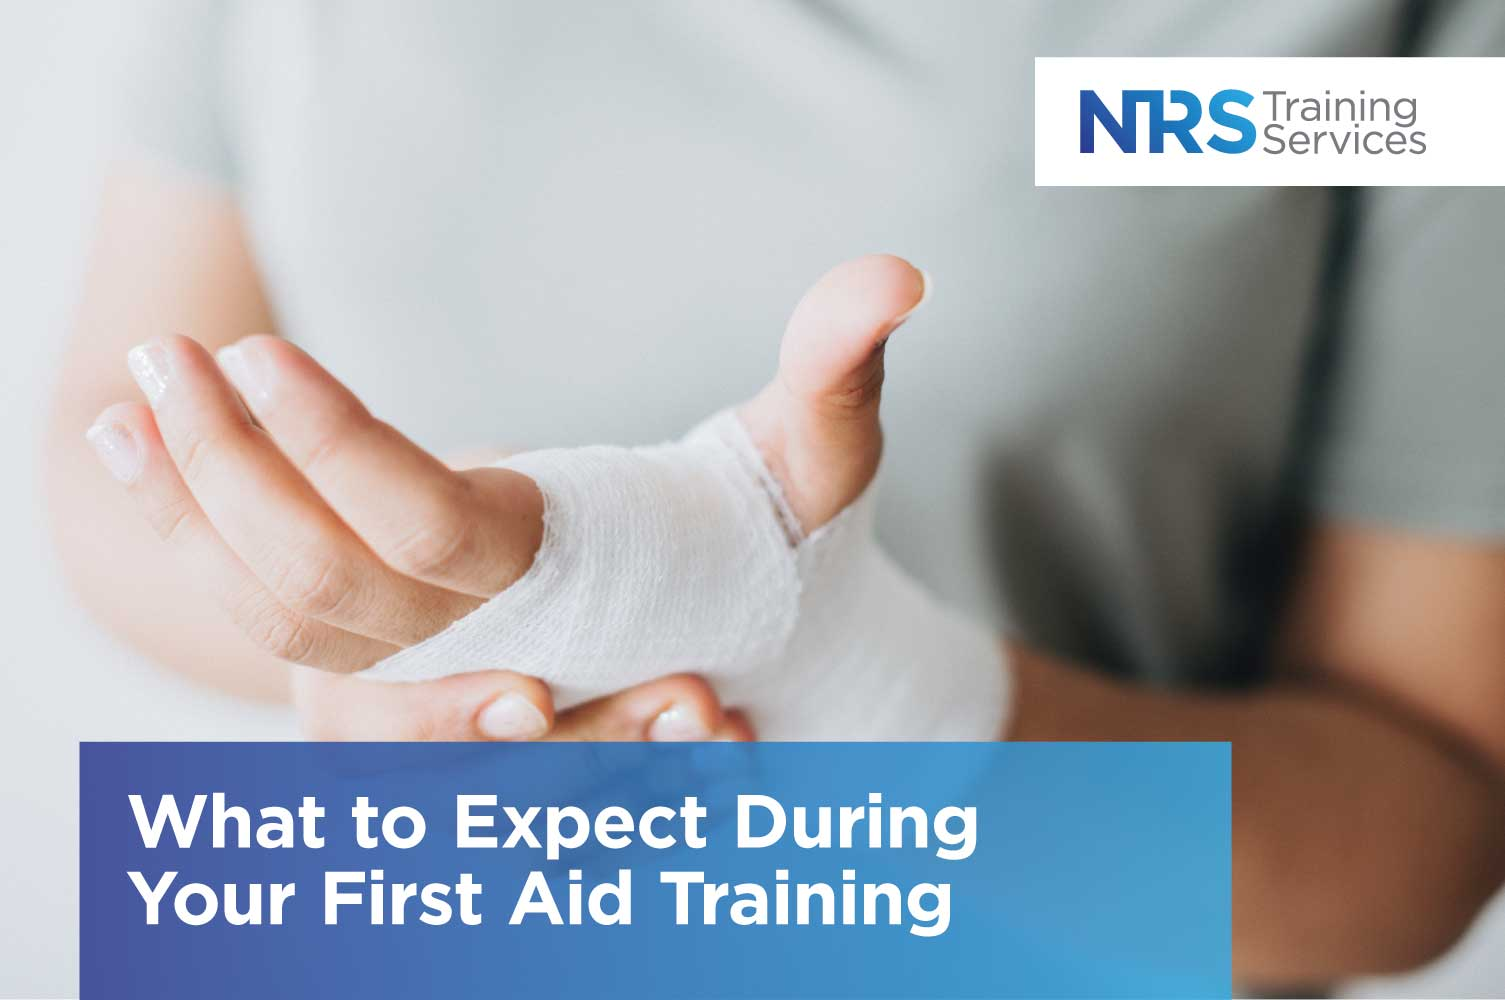 What to Expect During Your First Aid Training